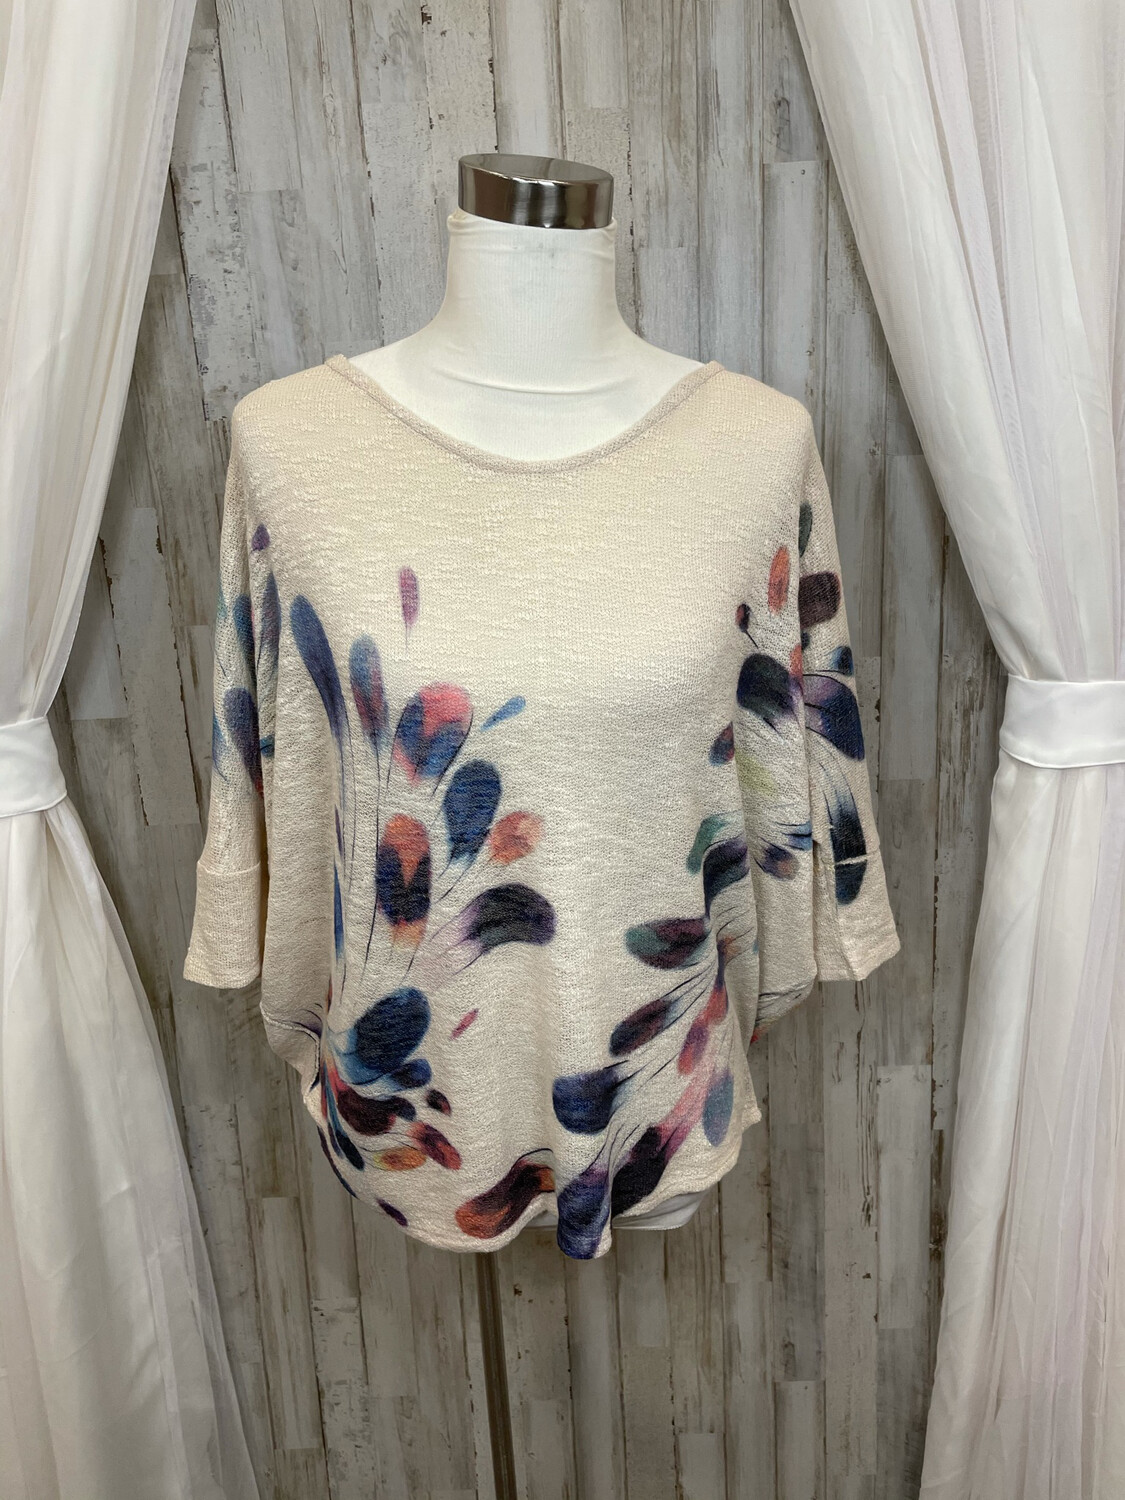 Phil Love Cream Feather Knit Sweater - S